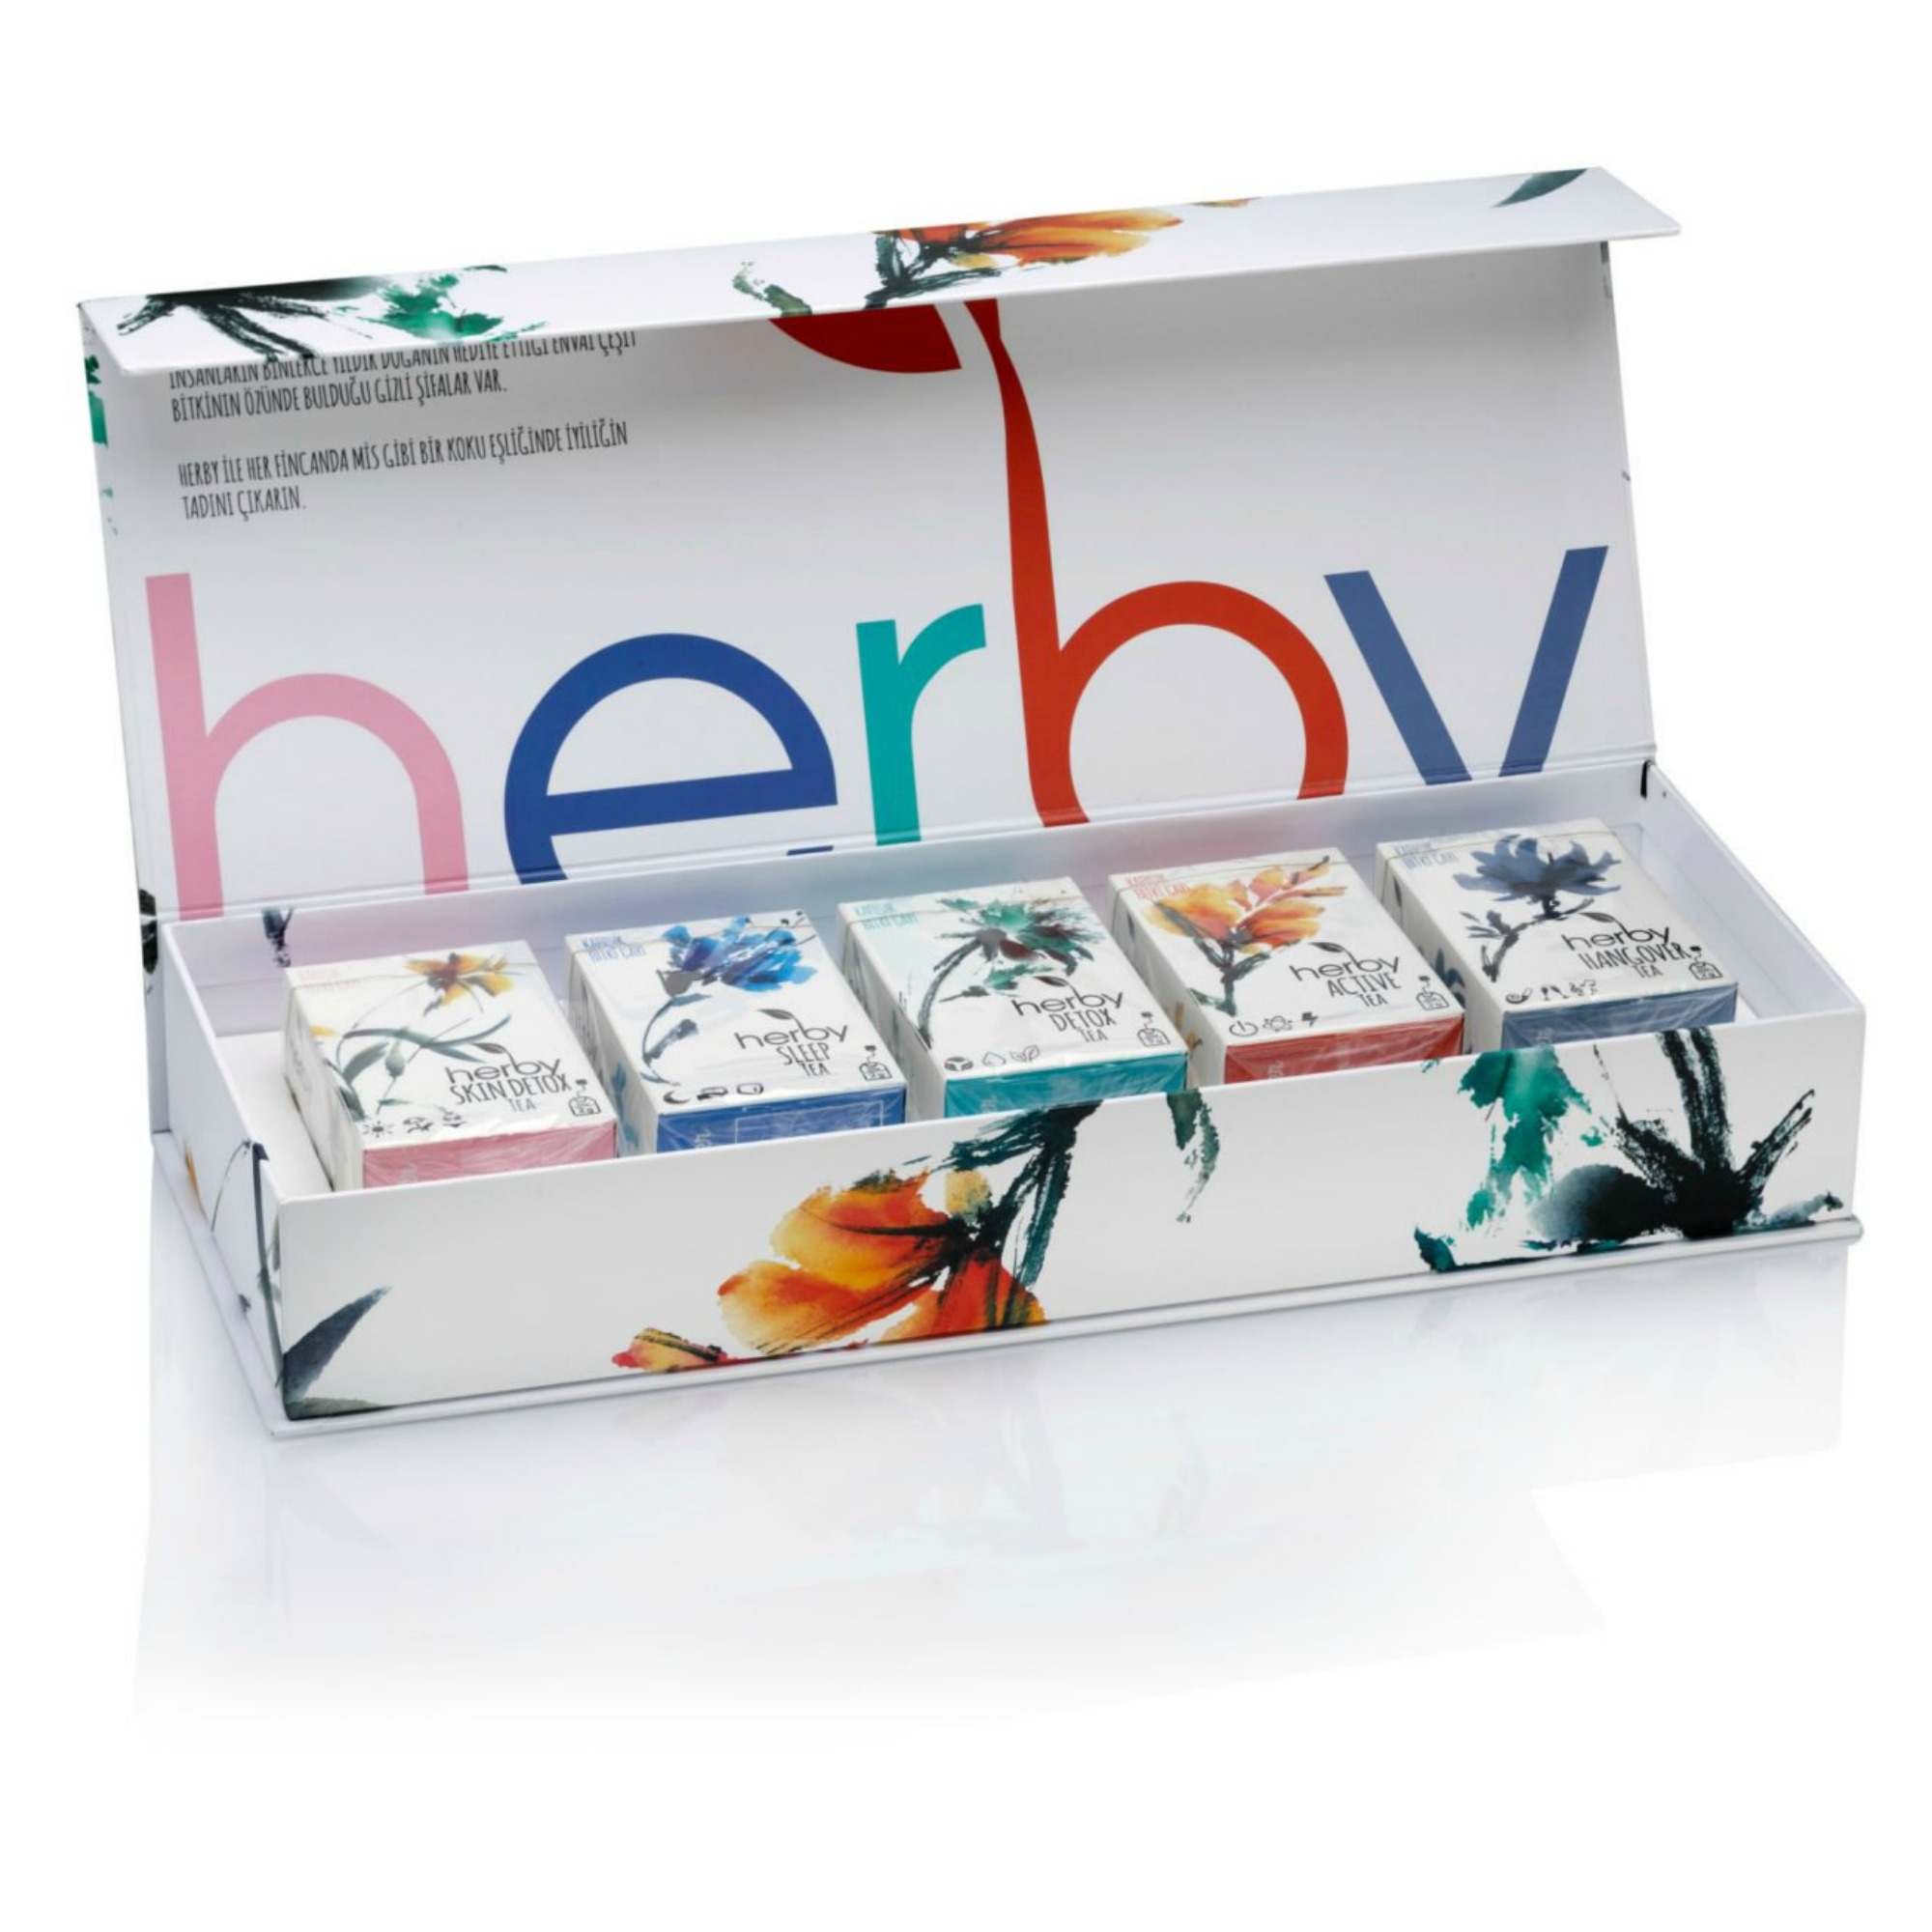 herby gift box